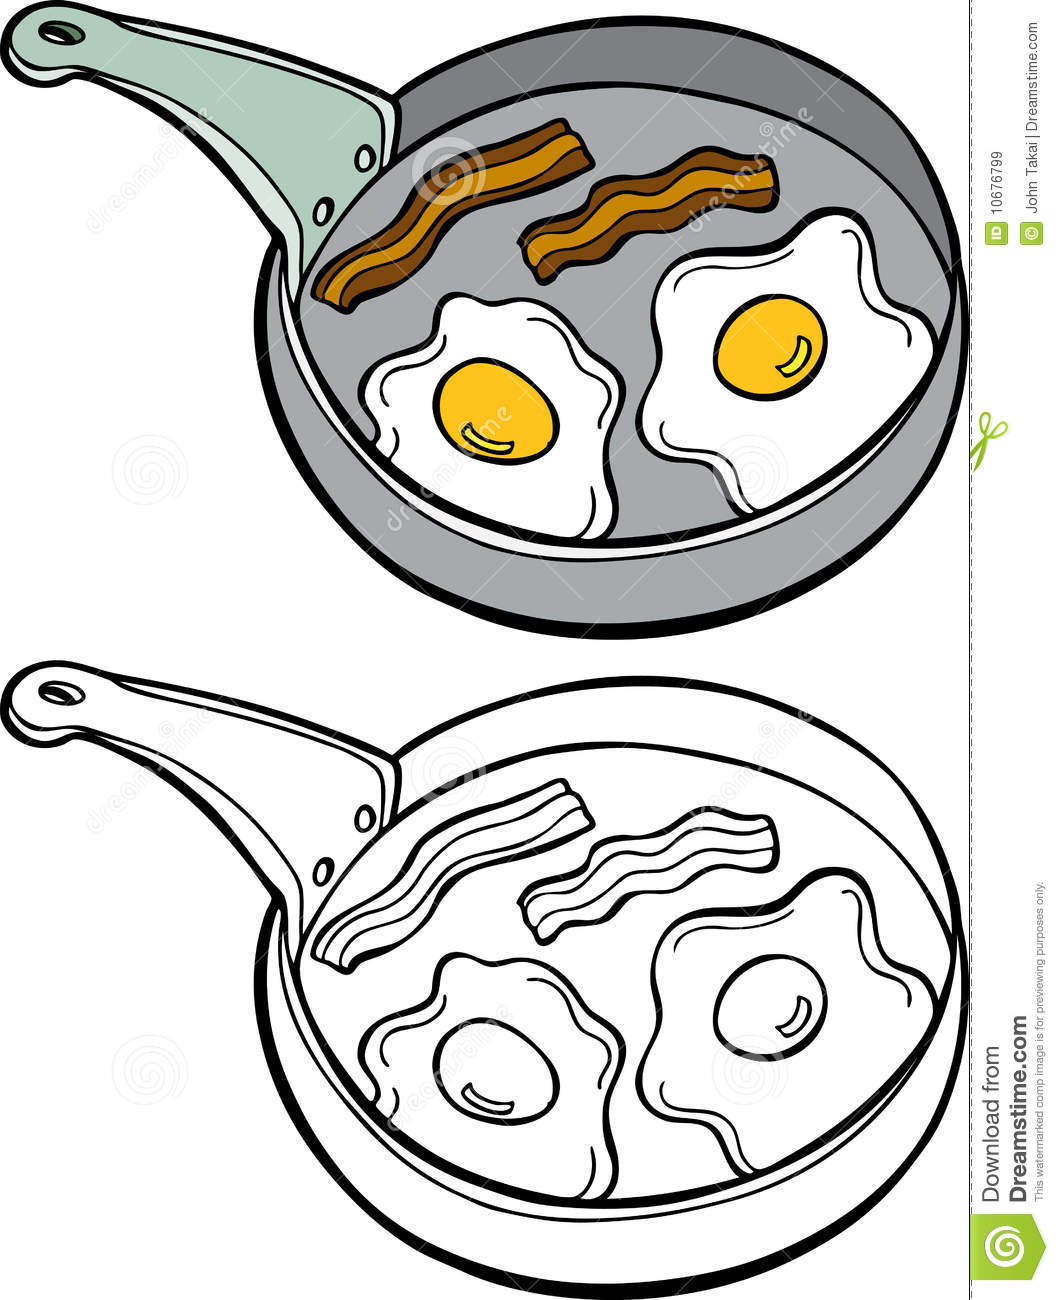 Fried Egg clipart free breakfast 20clipart Panda Clipart Free bacon%20clipart